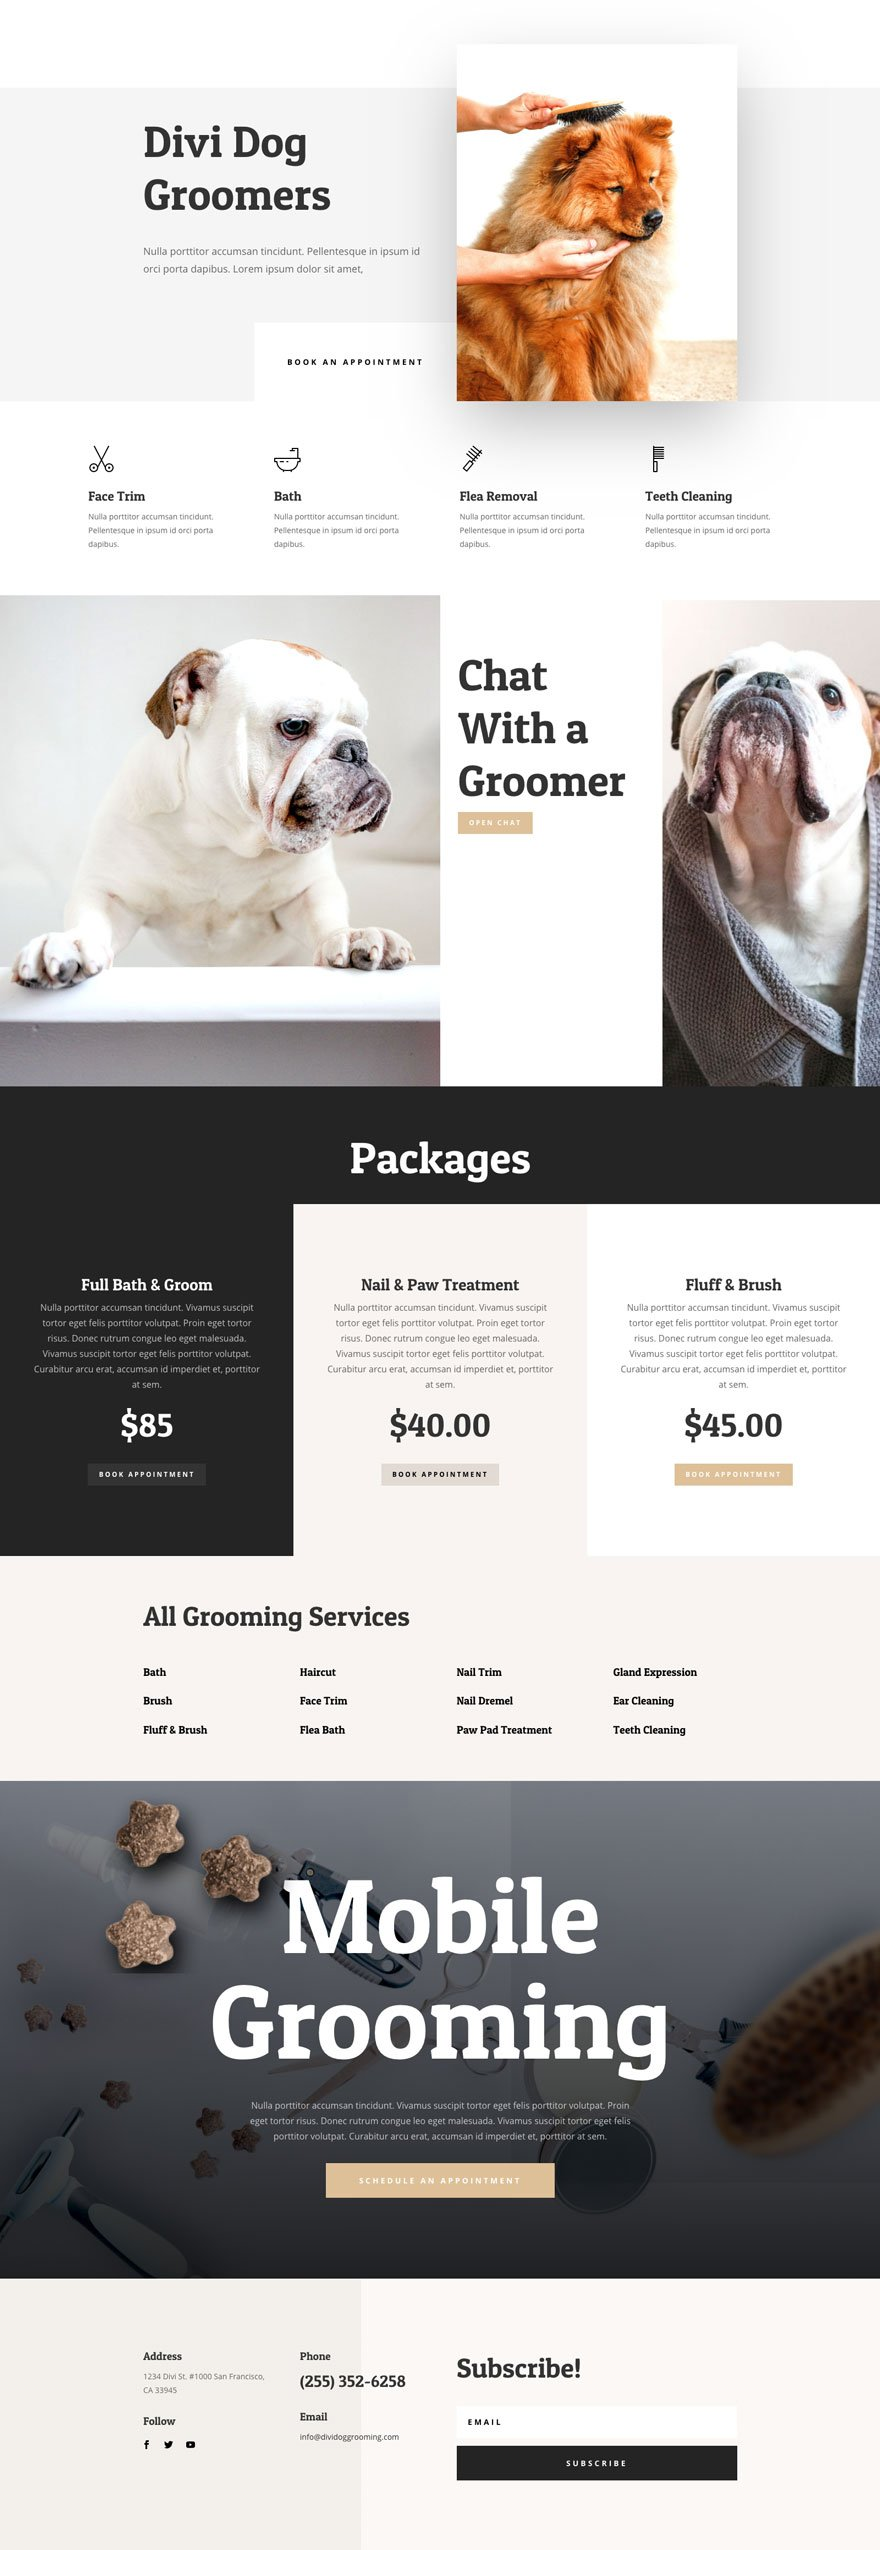 dog grooming website